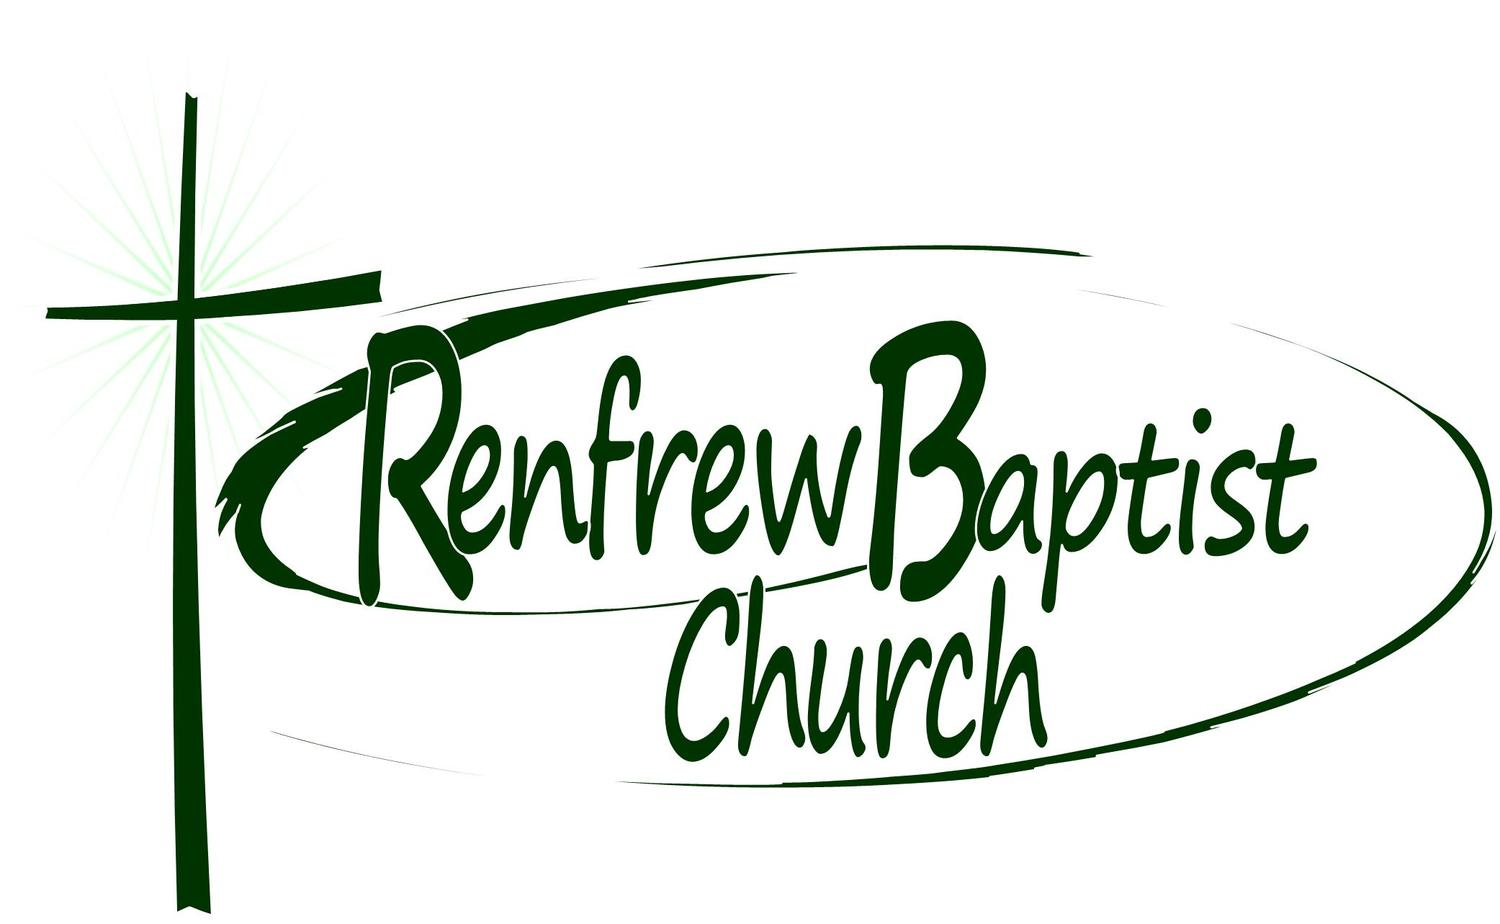 Weekly Sermon - Renfrew Baptist Church